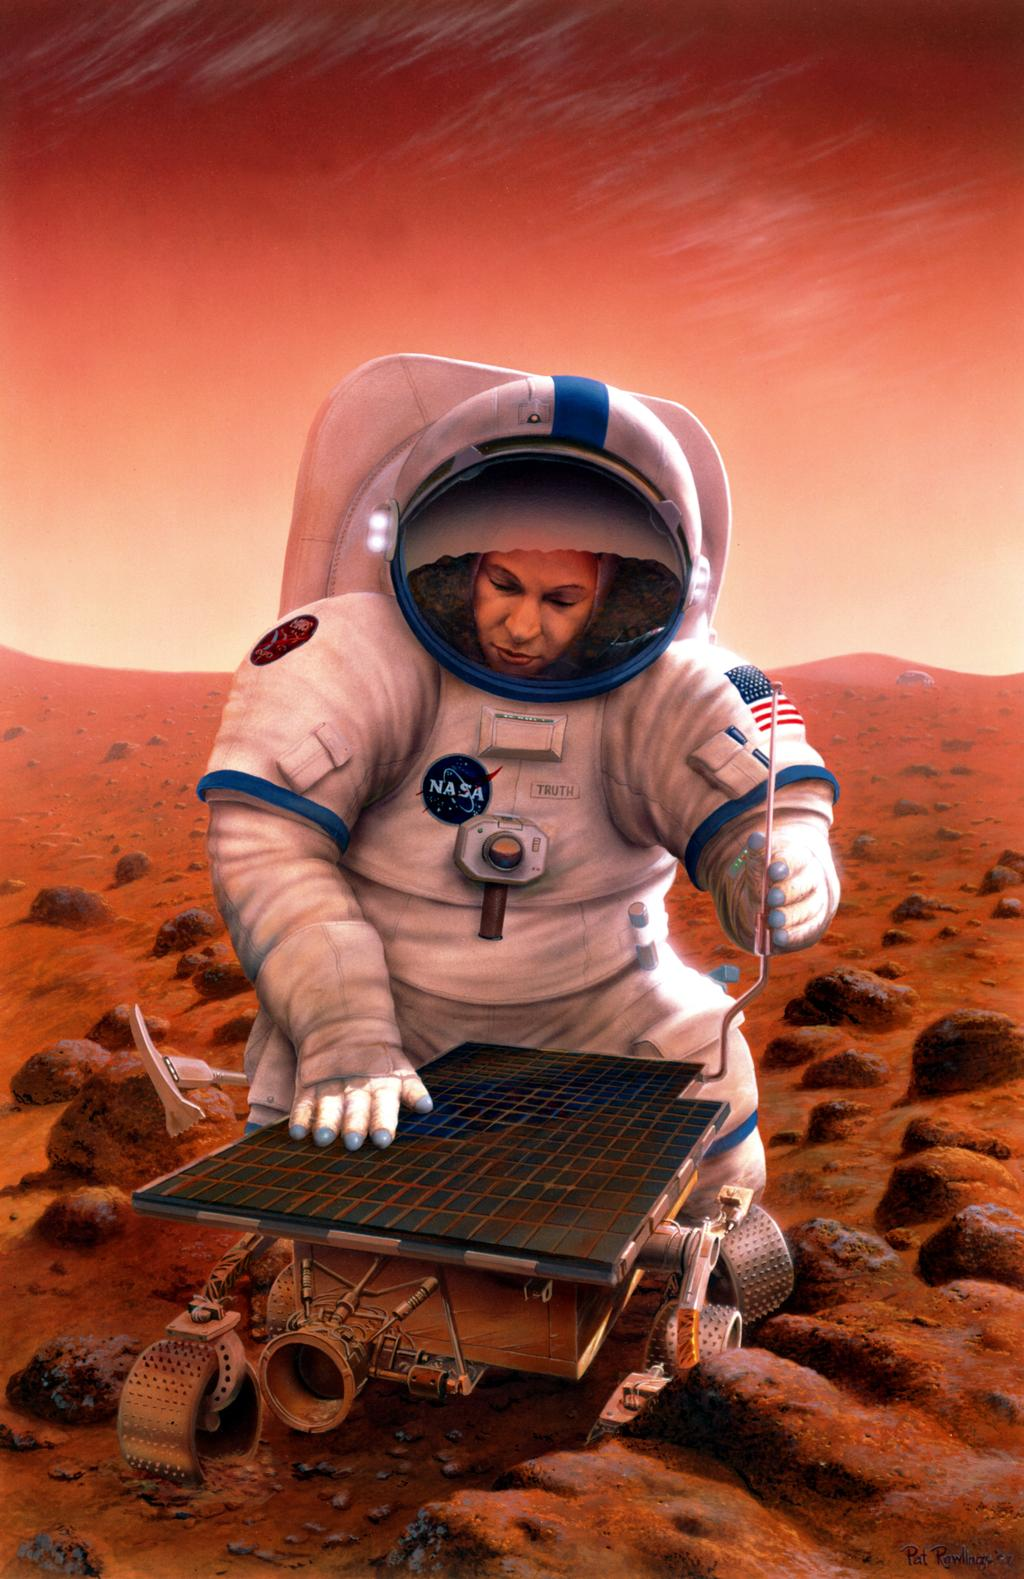 In this artist's concept, an astronaut returns to the landing site of NASA's Mars Pathfinder mission.